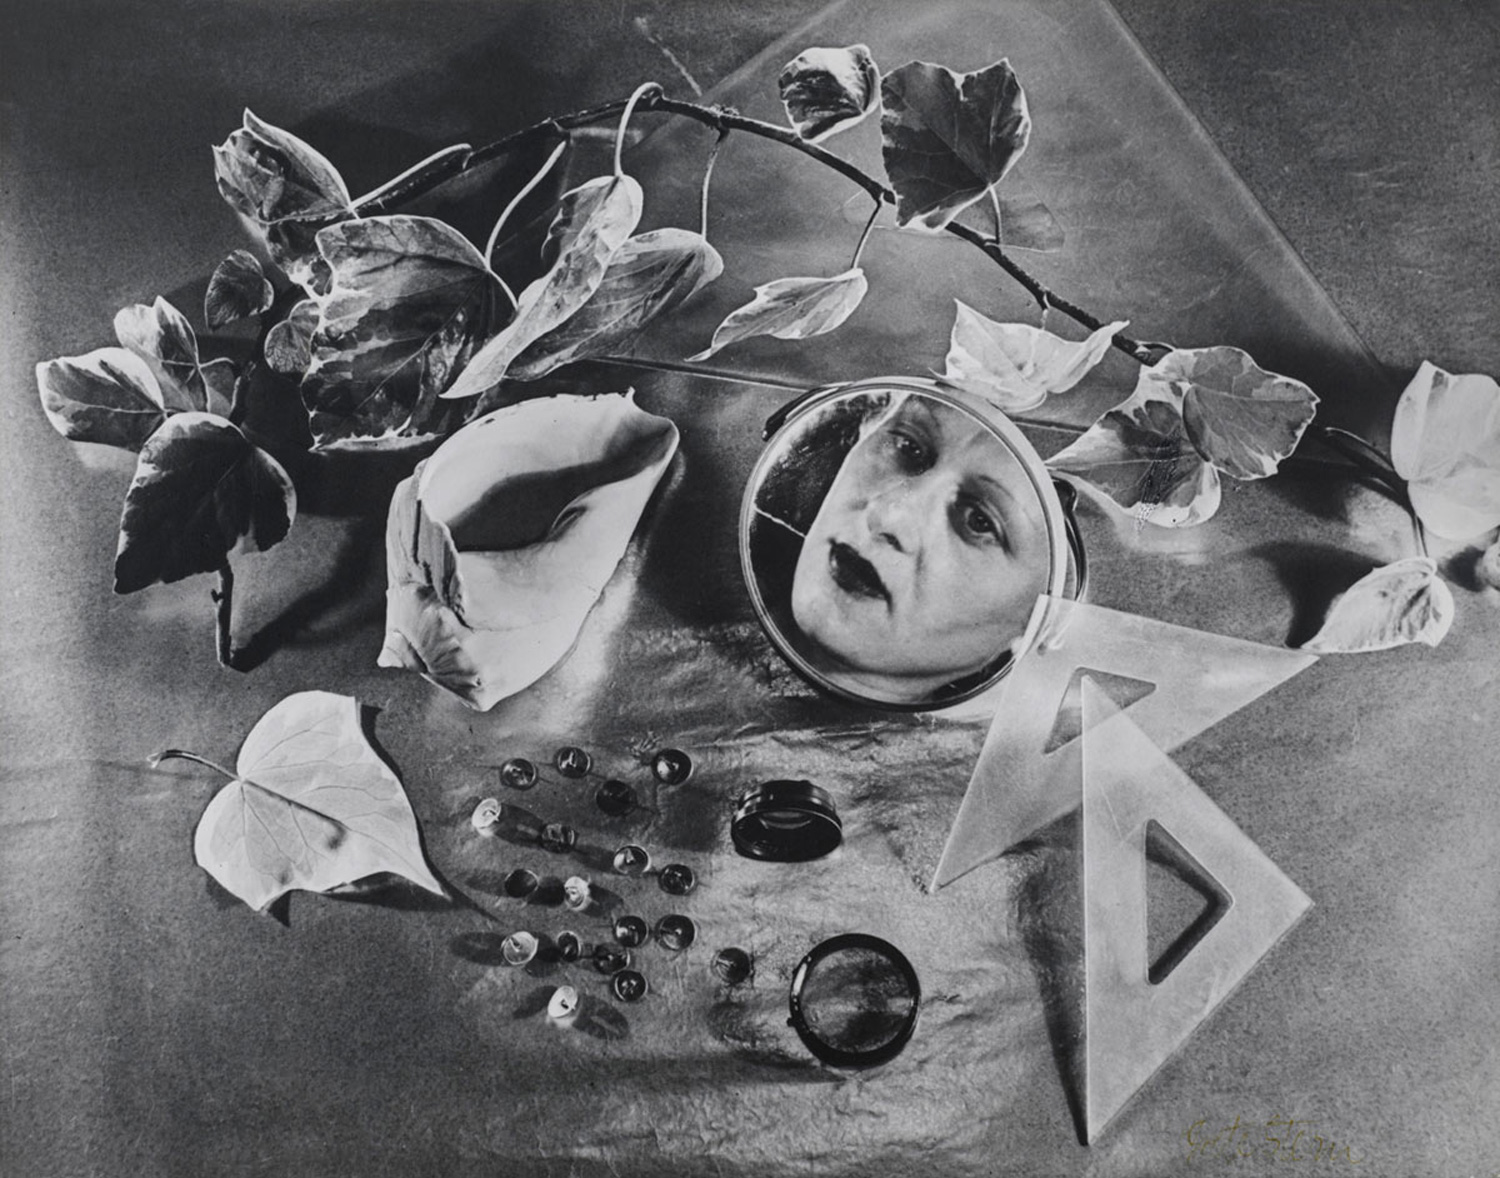 Image: A self-portrait by Grete Stern. Image courtesy of Wikipedia